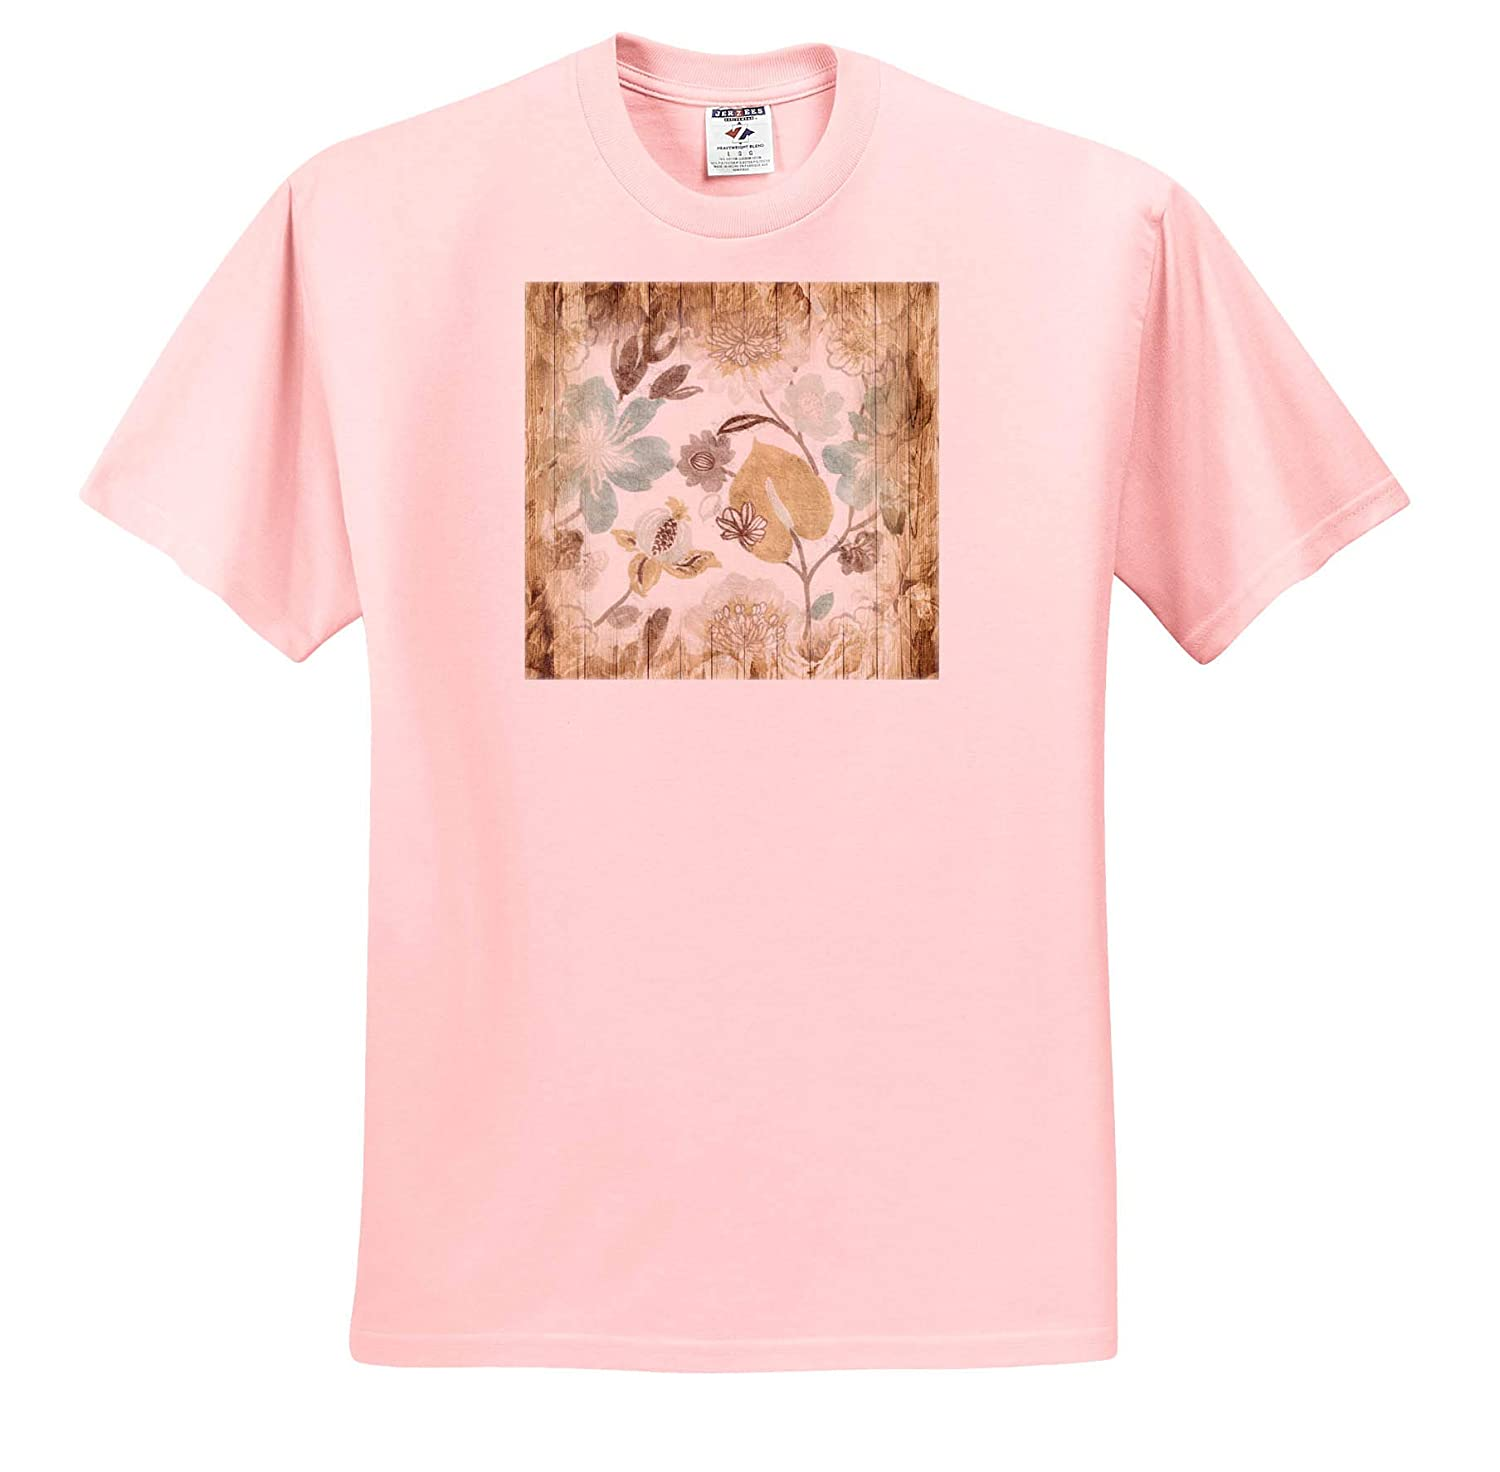 3dRose Lens Art by Florene Image of Soft Gold and Aqua On Aged Tan Wood Adult T-Shirt XL ts/_309488 Vintage Floral Art